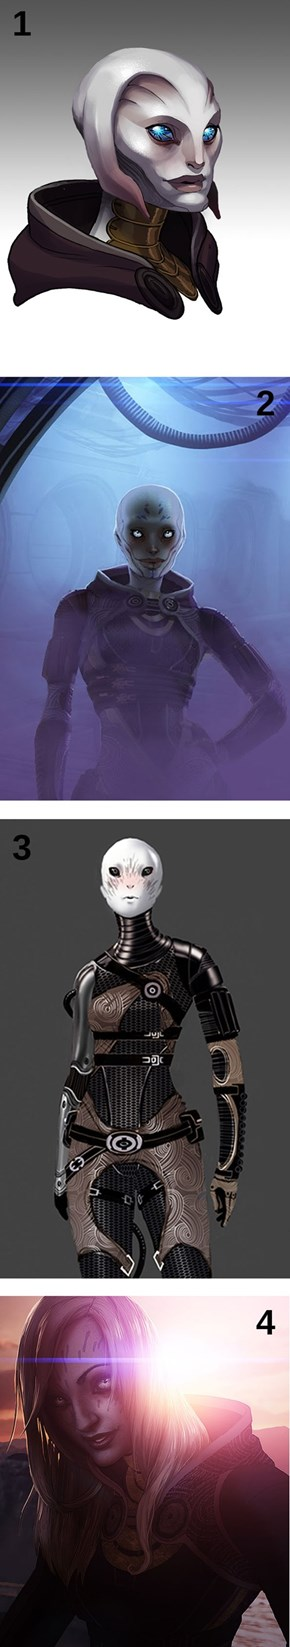 Tali's faces (Concept)